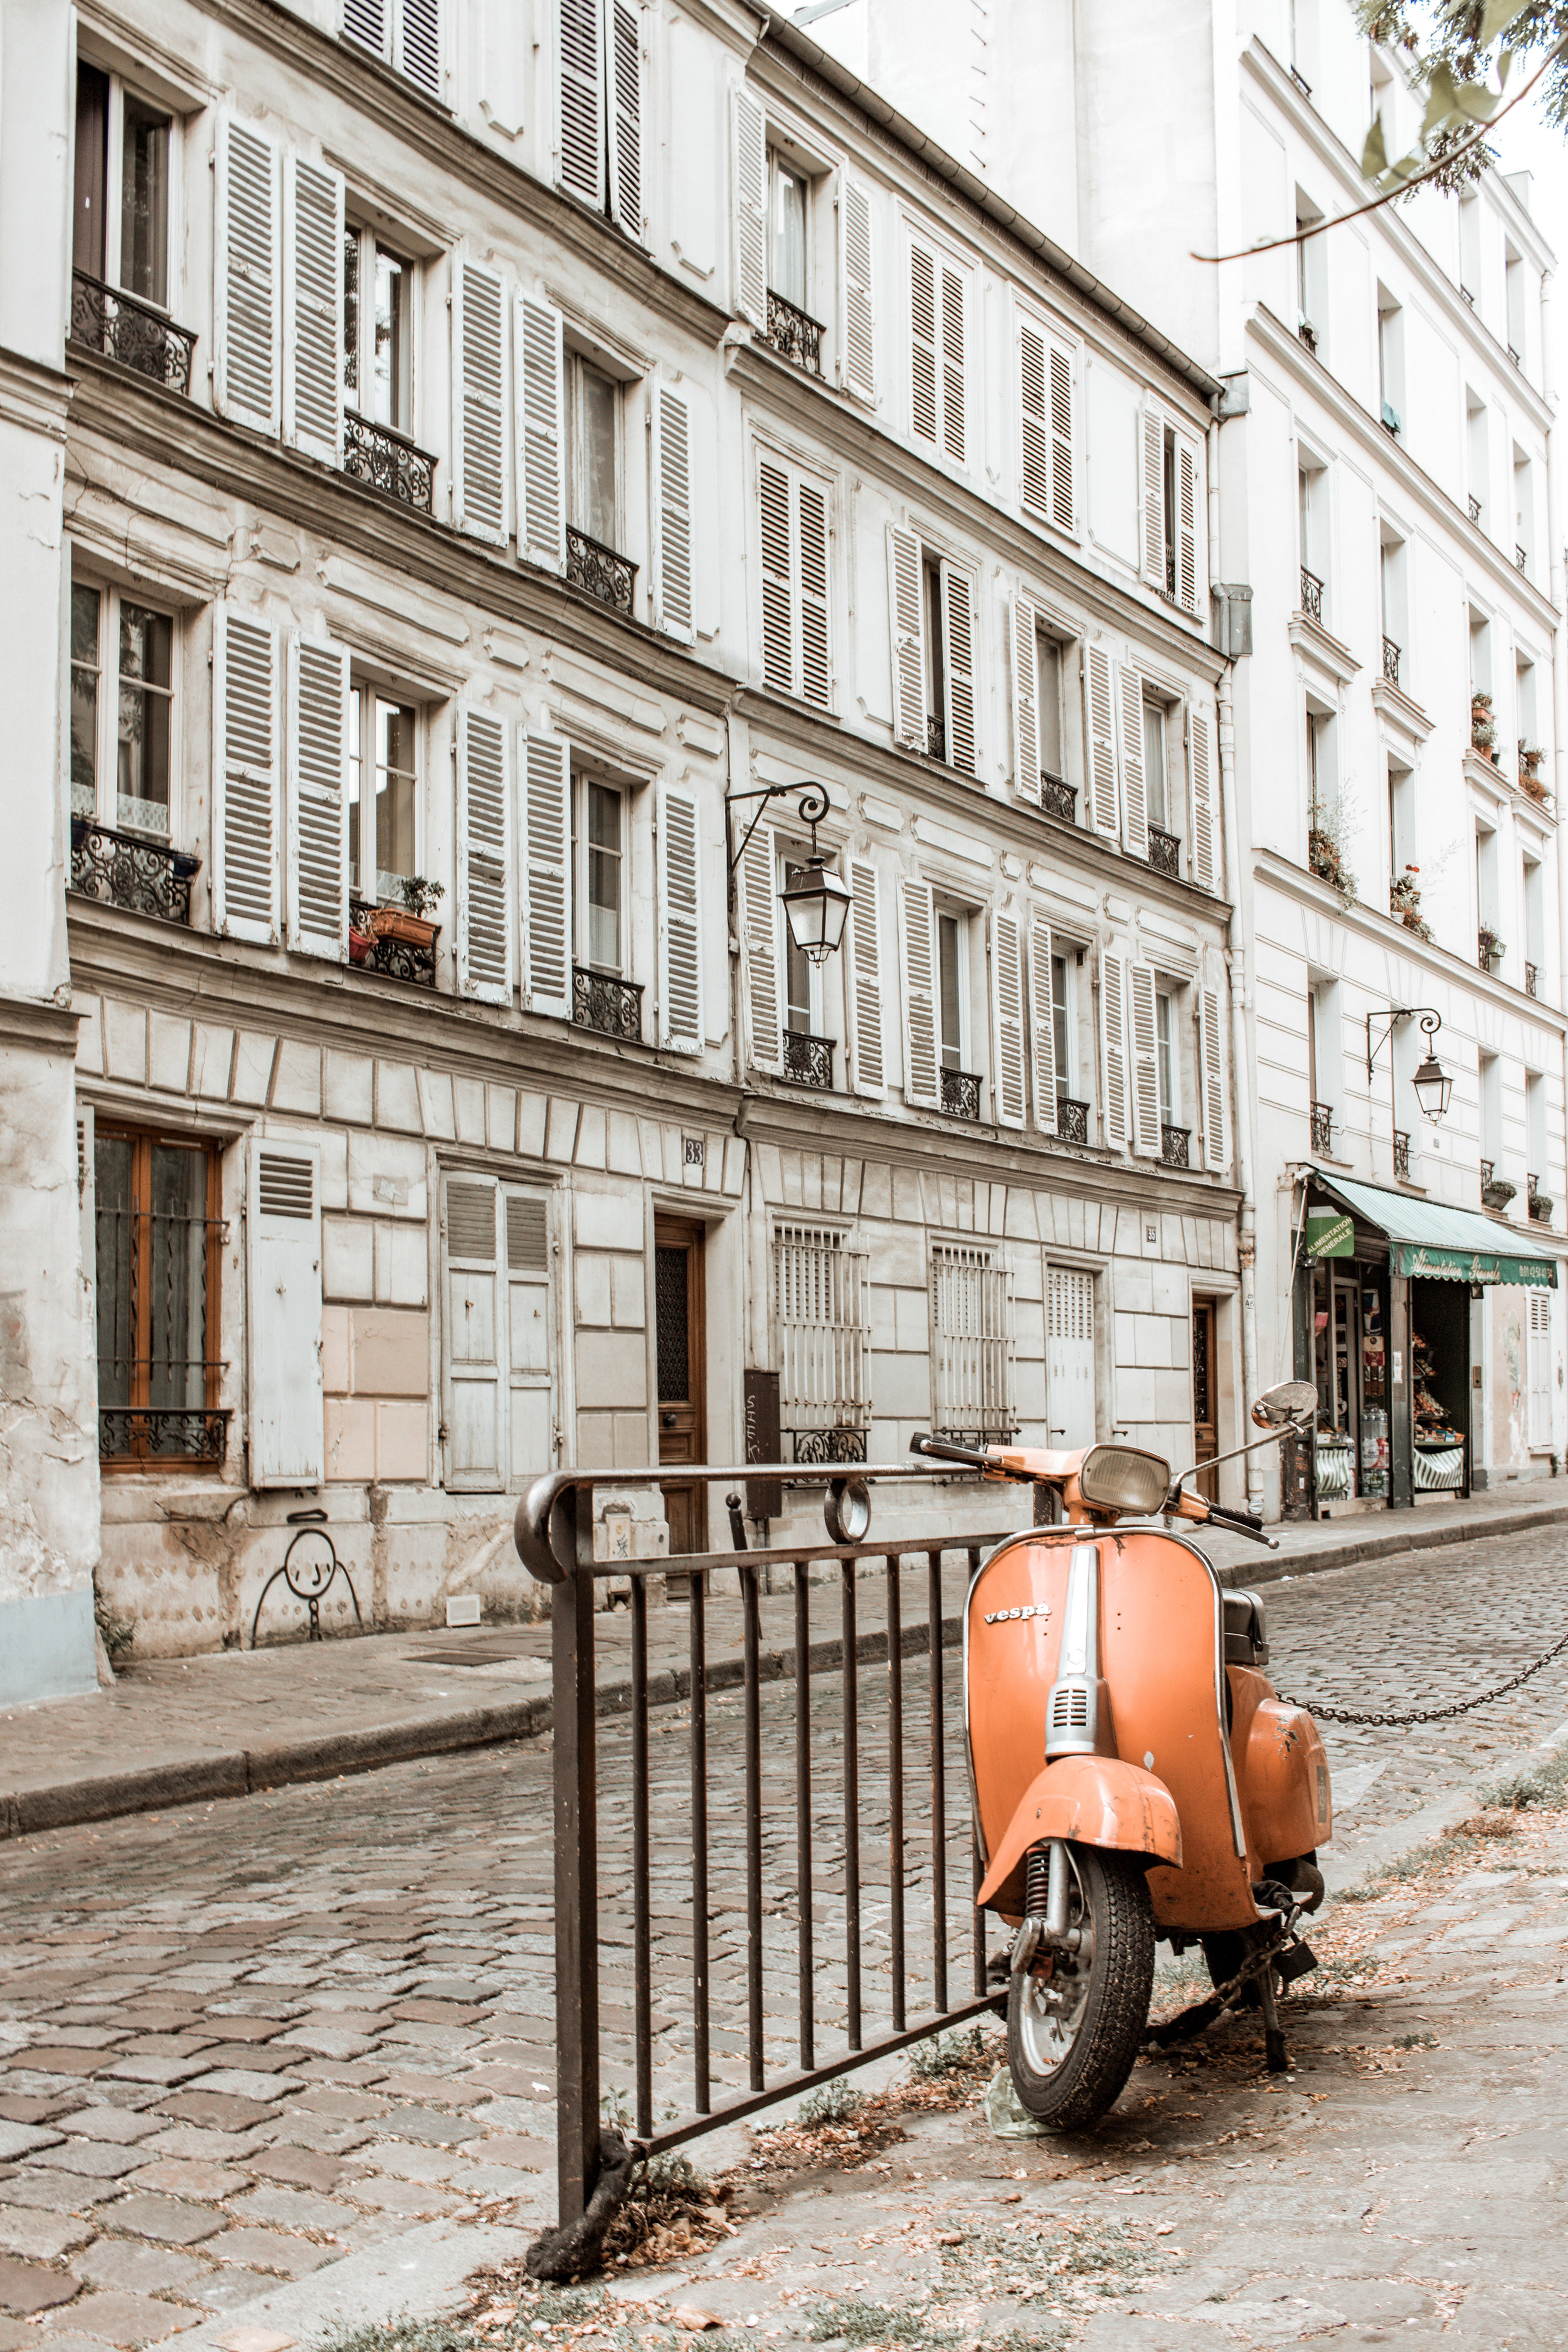 Paris-Europe-Trip-Best-Itinerary-69.jpg